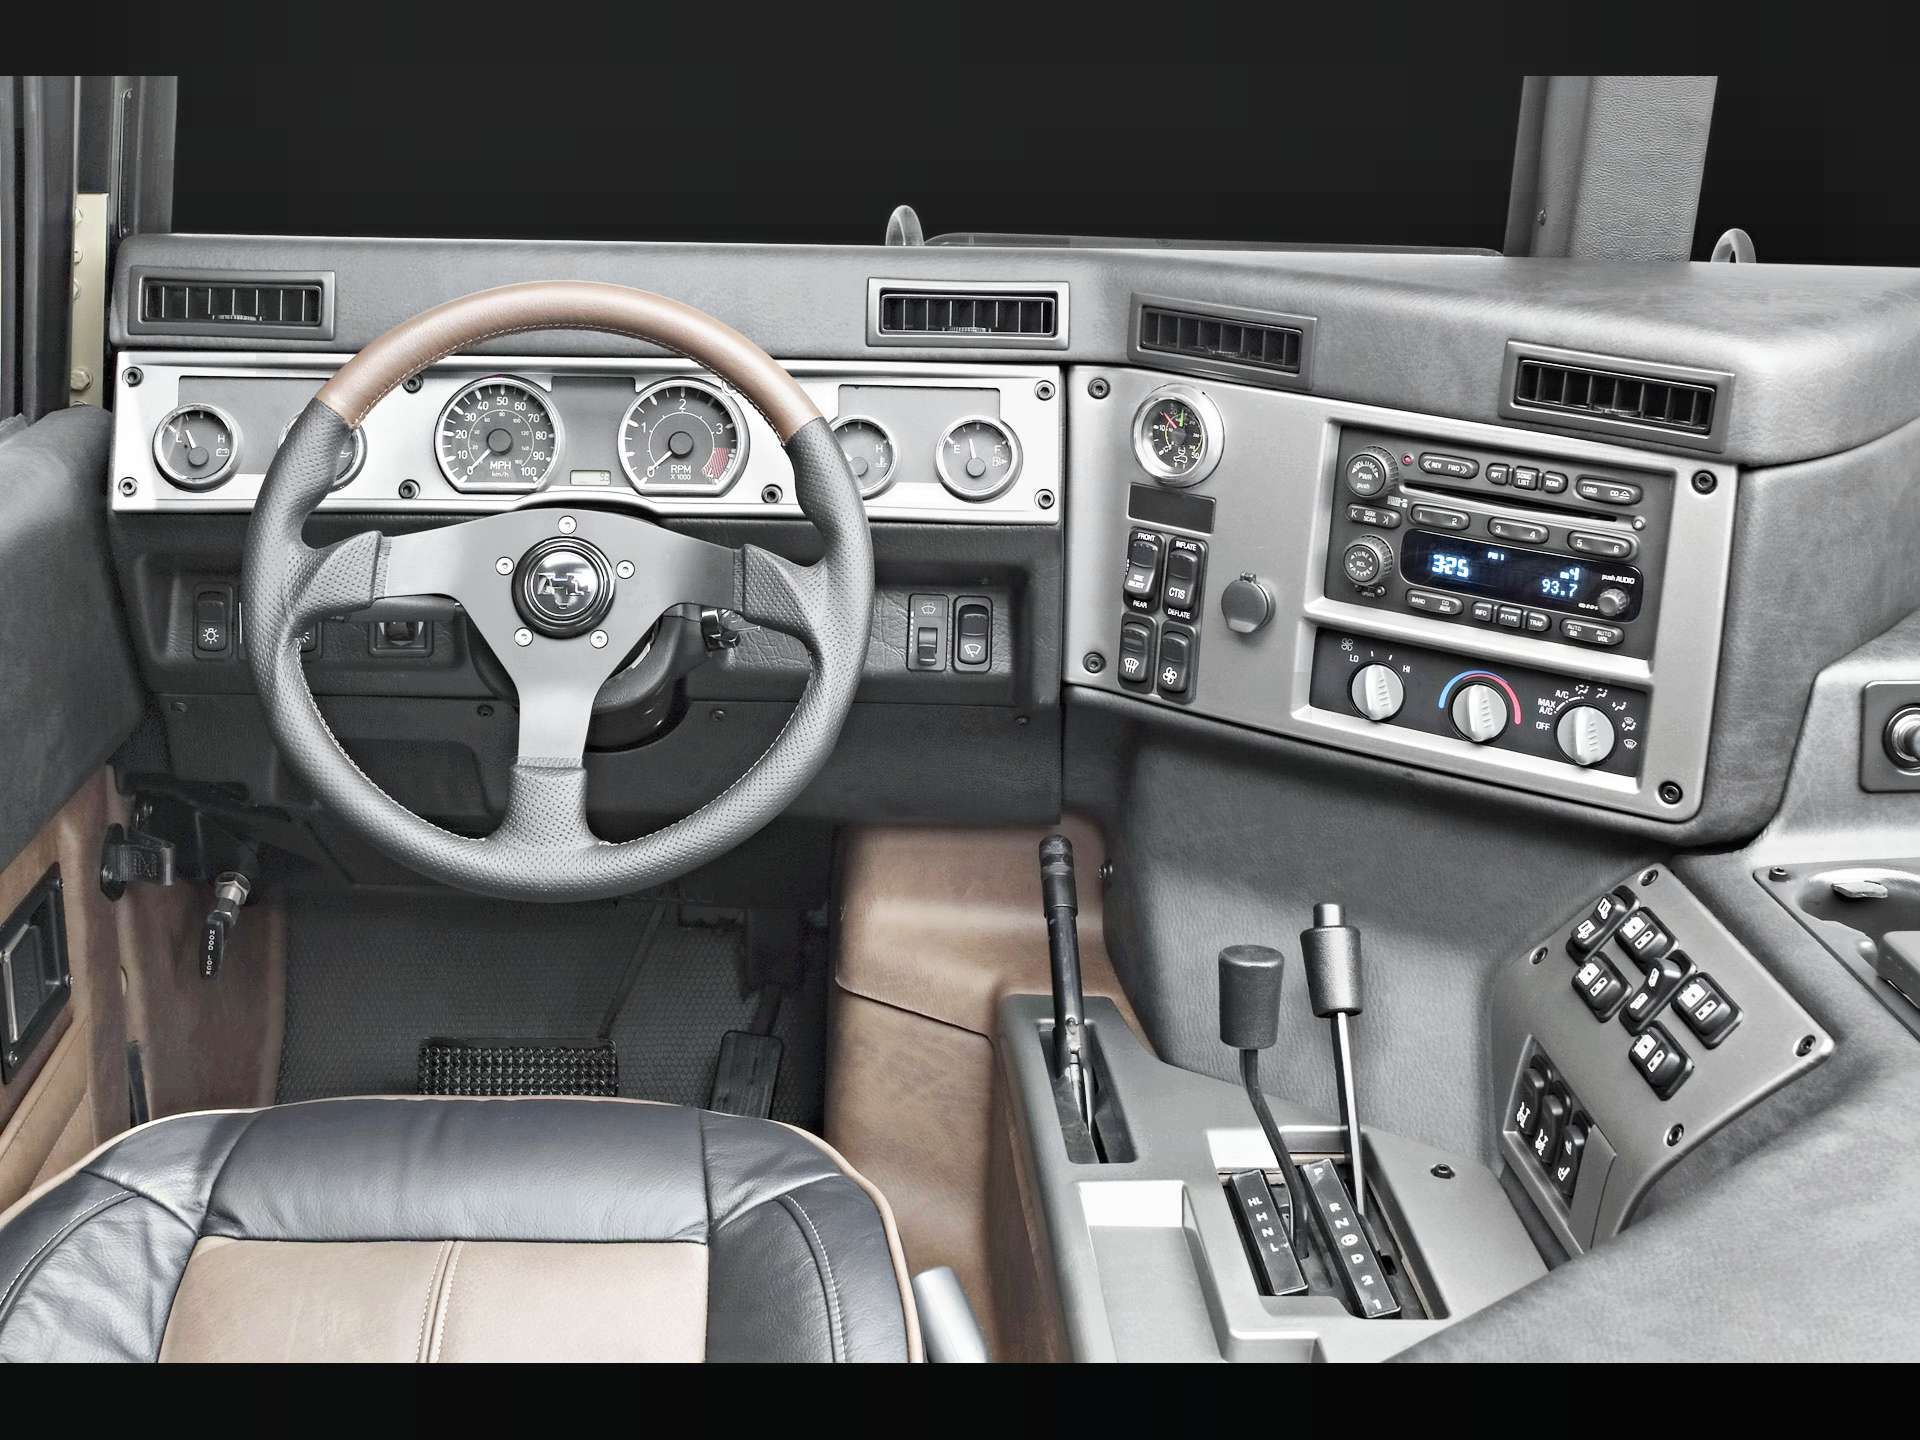 hummer interior - Yahoo Image Search Results   Ride   Pinterest ...